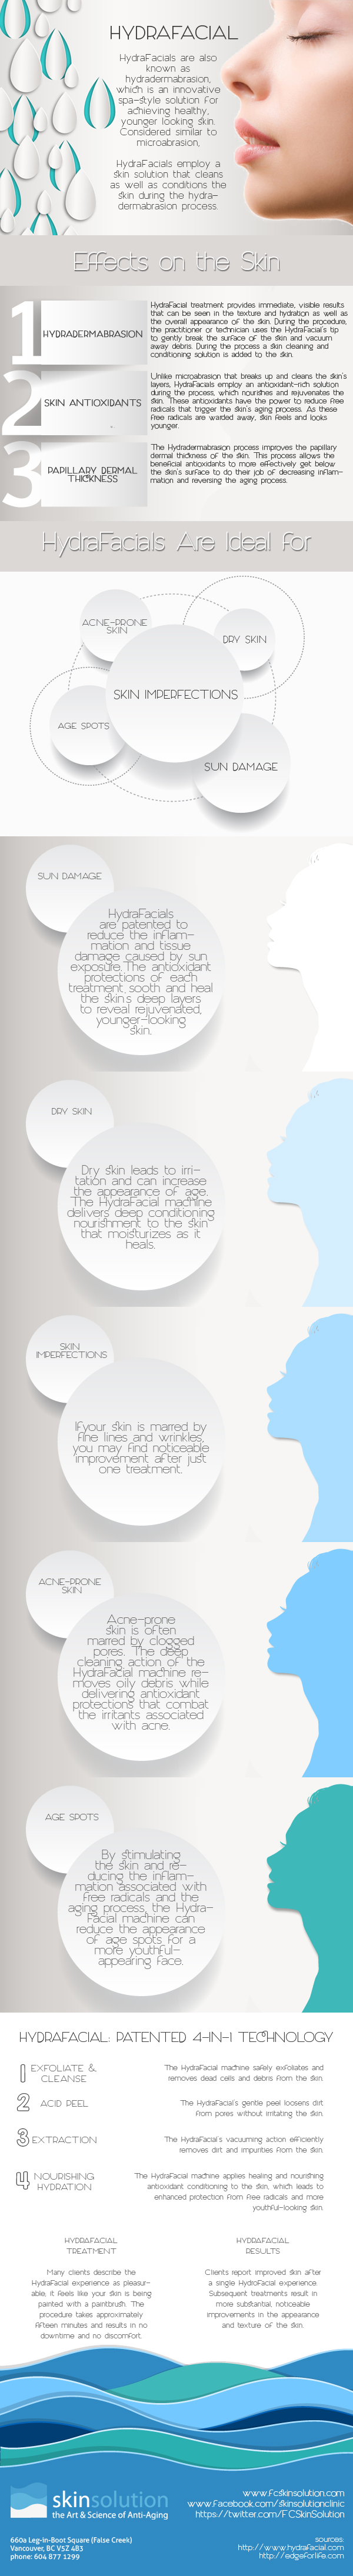 Hydrafacial Treament Infographic